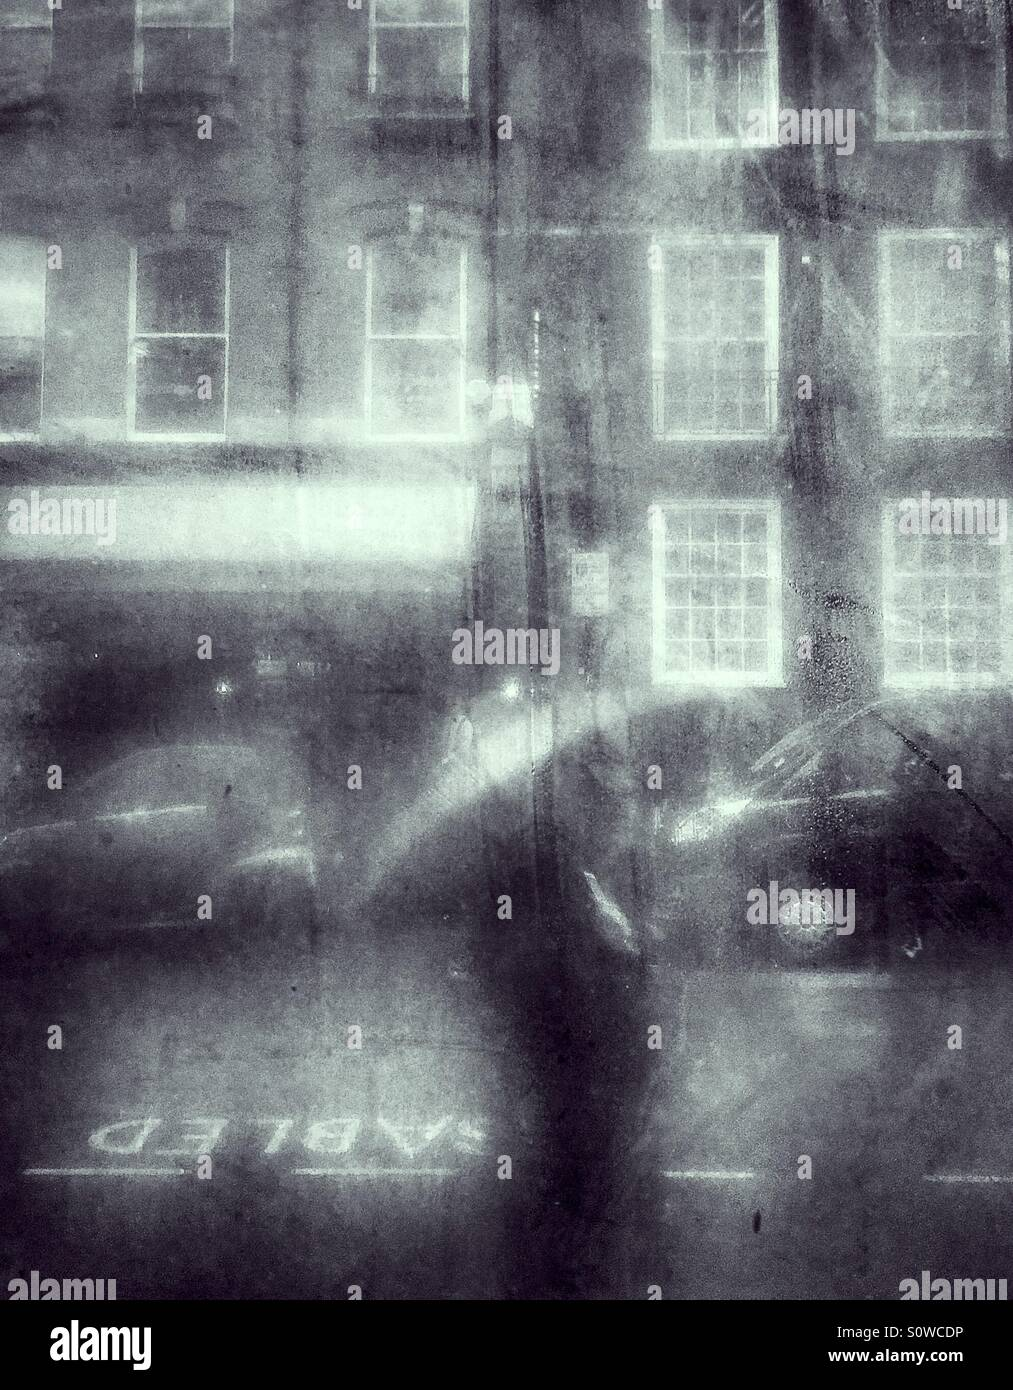 London Pedestrian with umbrella on a wet, miserable winters day, seen through a misty window. - Stock Image